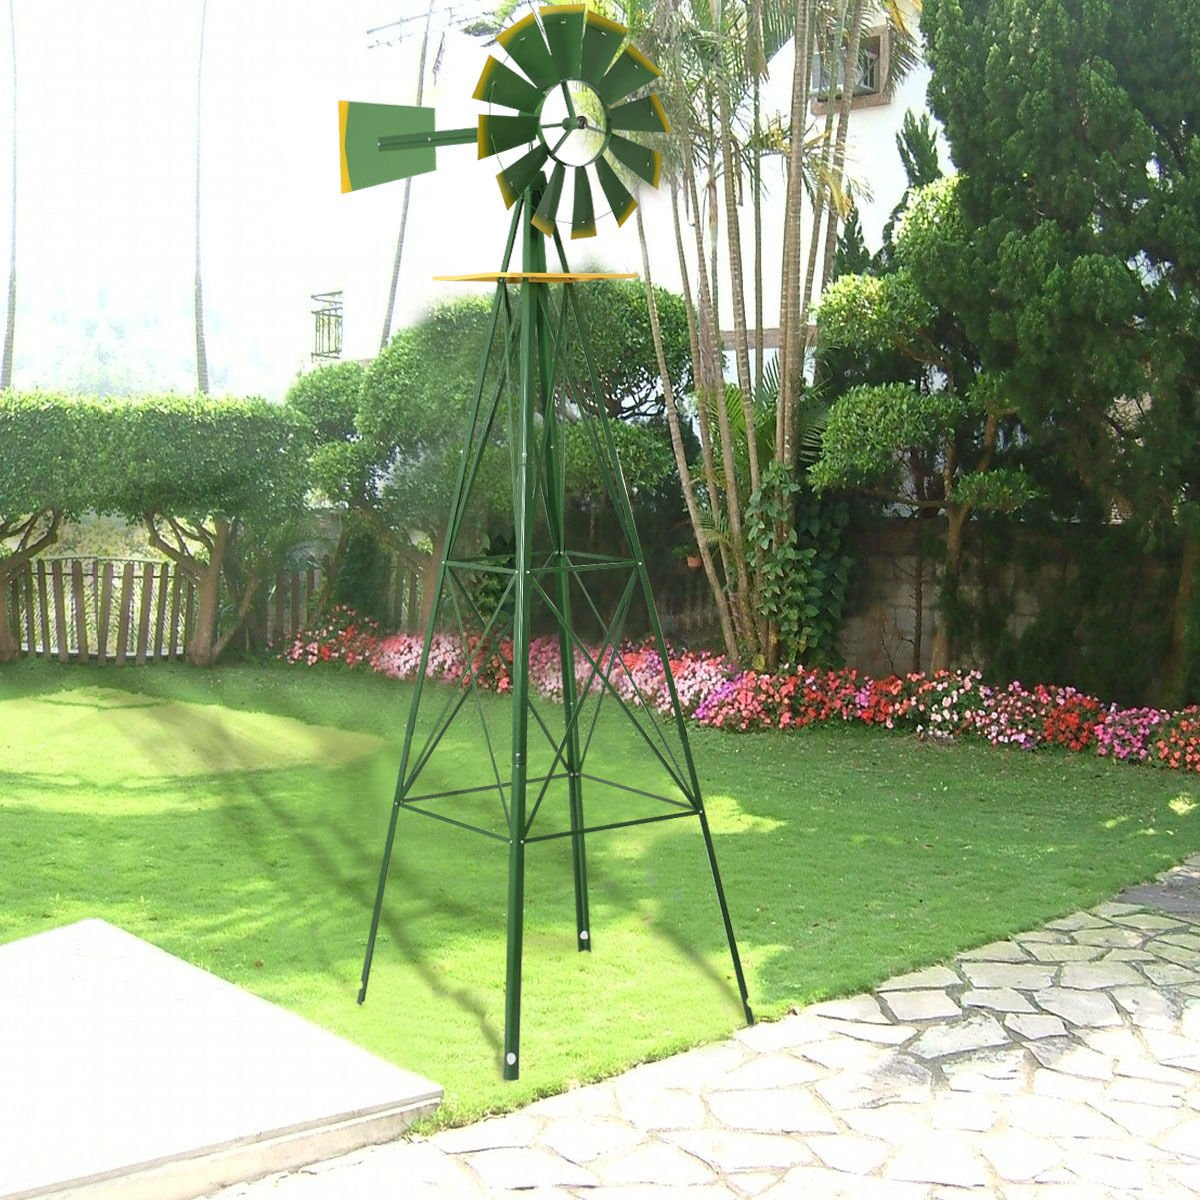 8Ft Tall Windmill Ornamental Wind Wheel Green And Yellow Garden